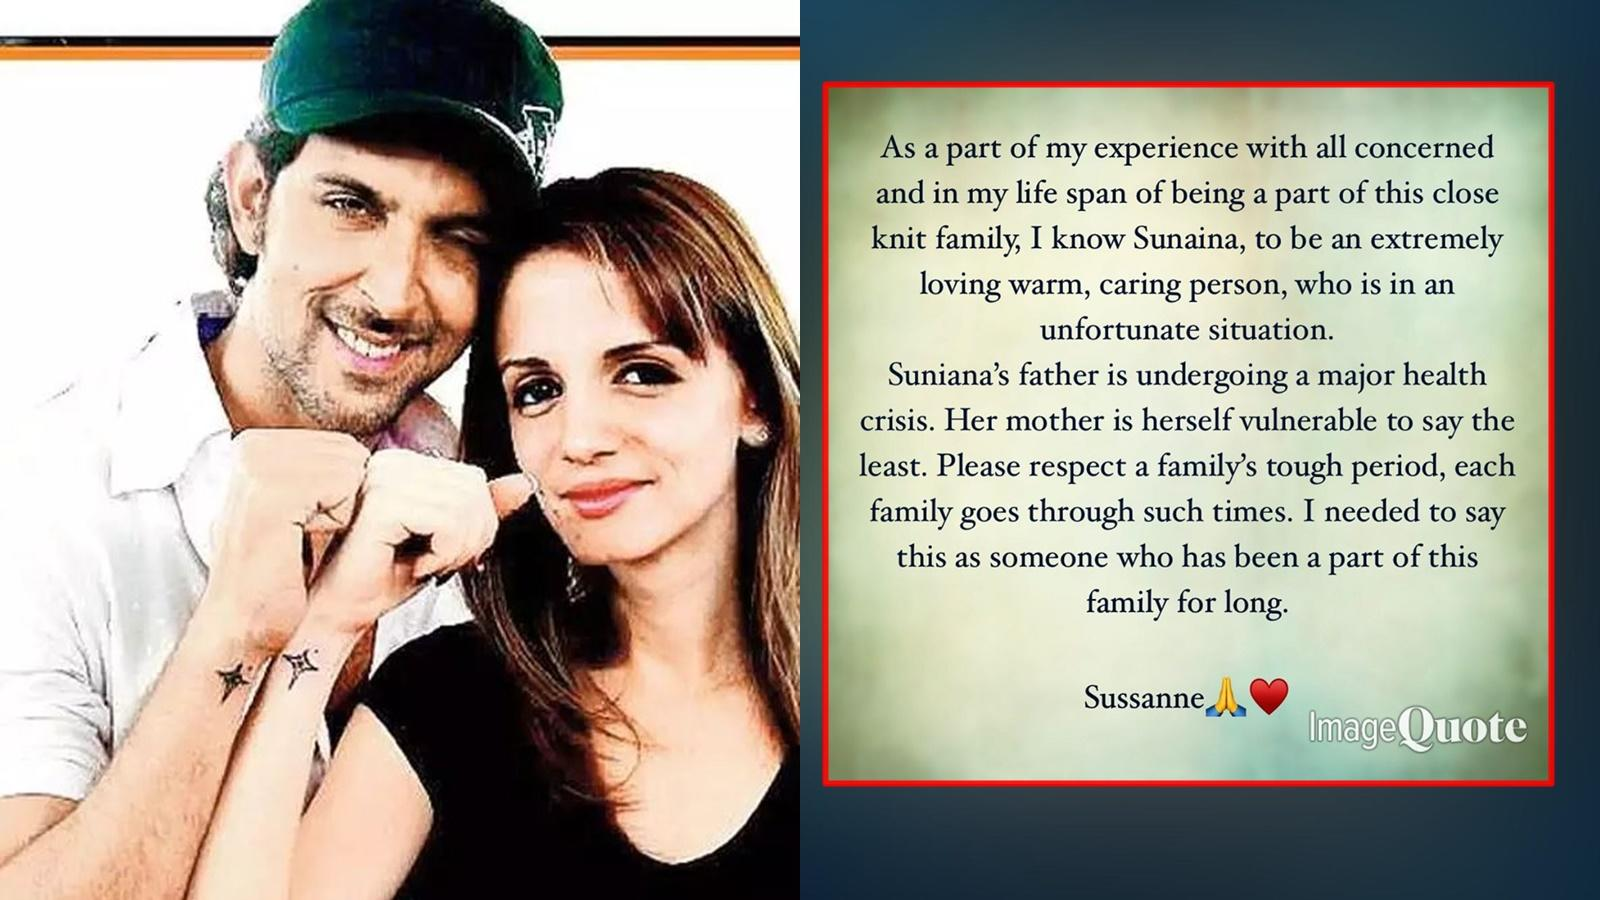 Sunaina Roshan controversy: Sussanne Khan speaks up in support of ex-hubby  Hrithik Roshan's family